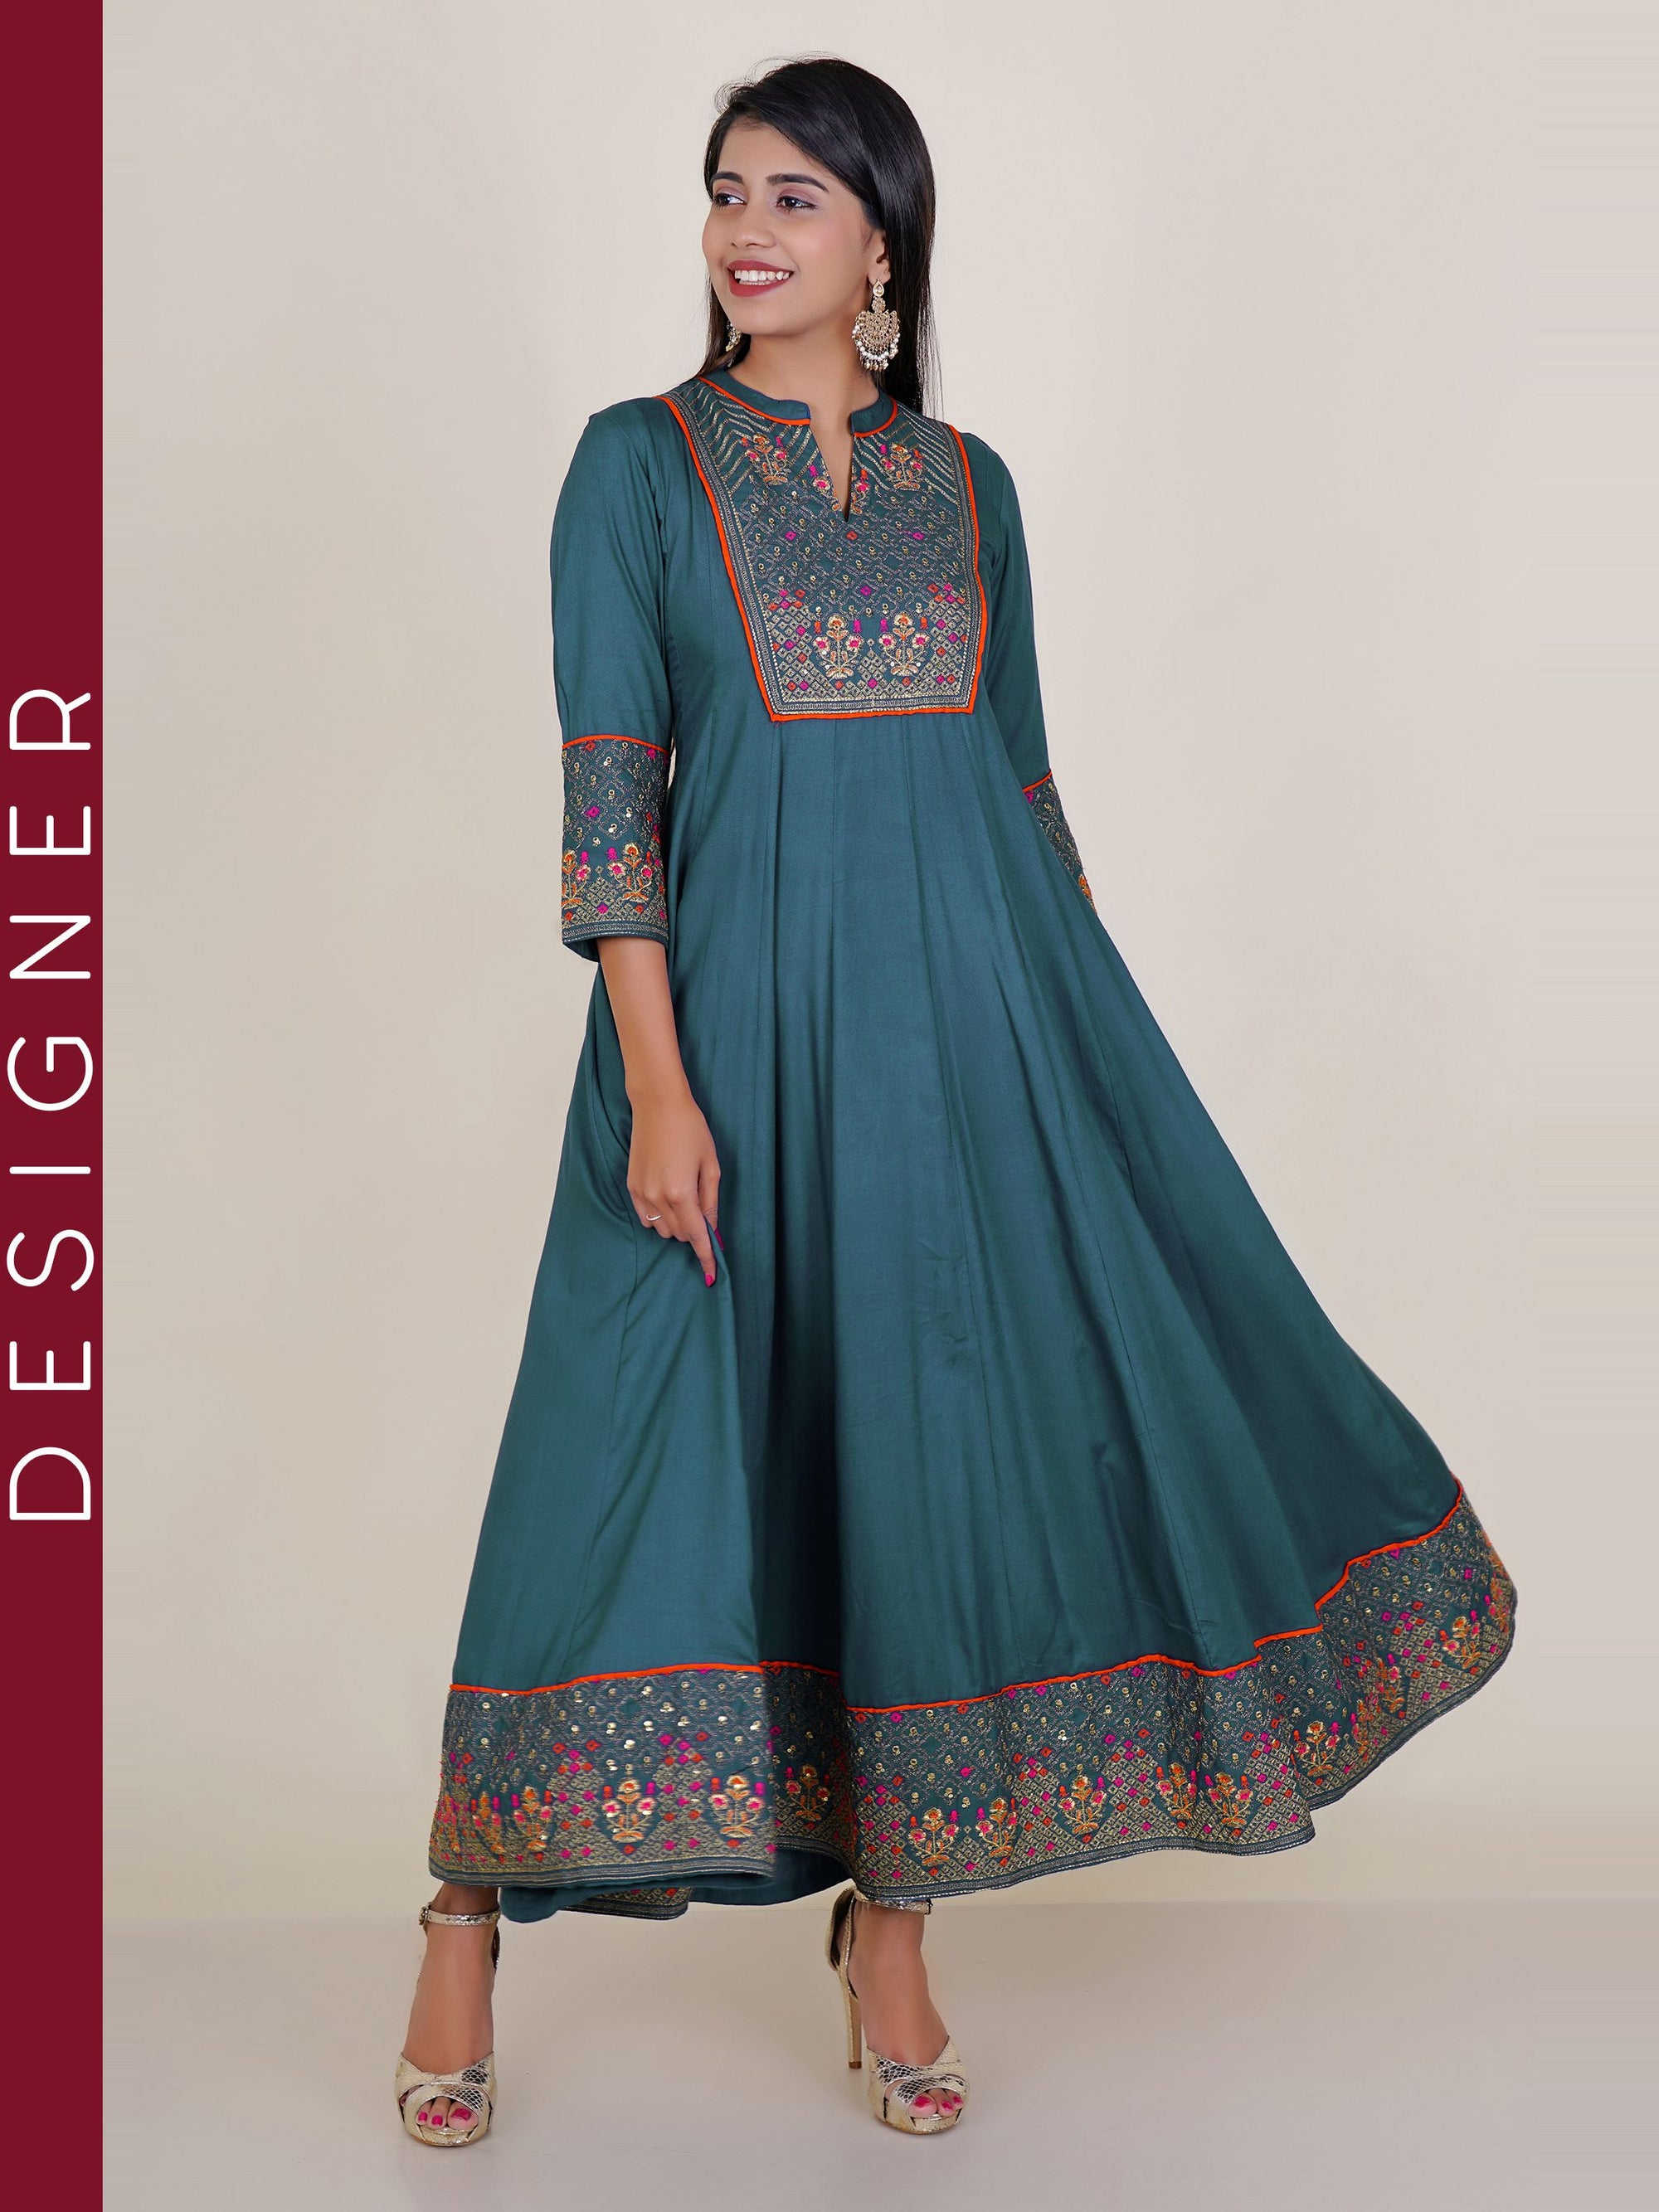 be711f311 Buy Kurtis Online With Fashor - Minimum 50%-70% OFF Page 3